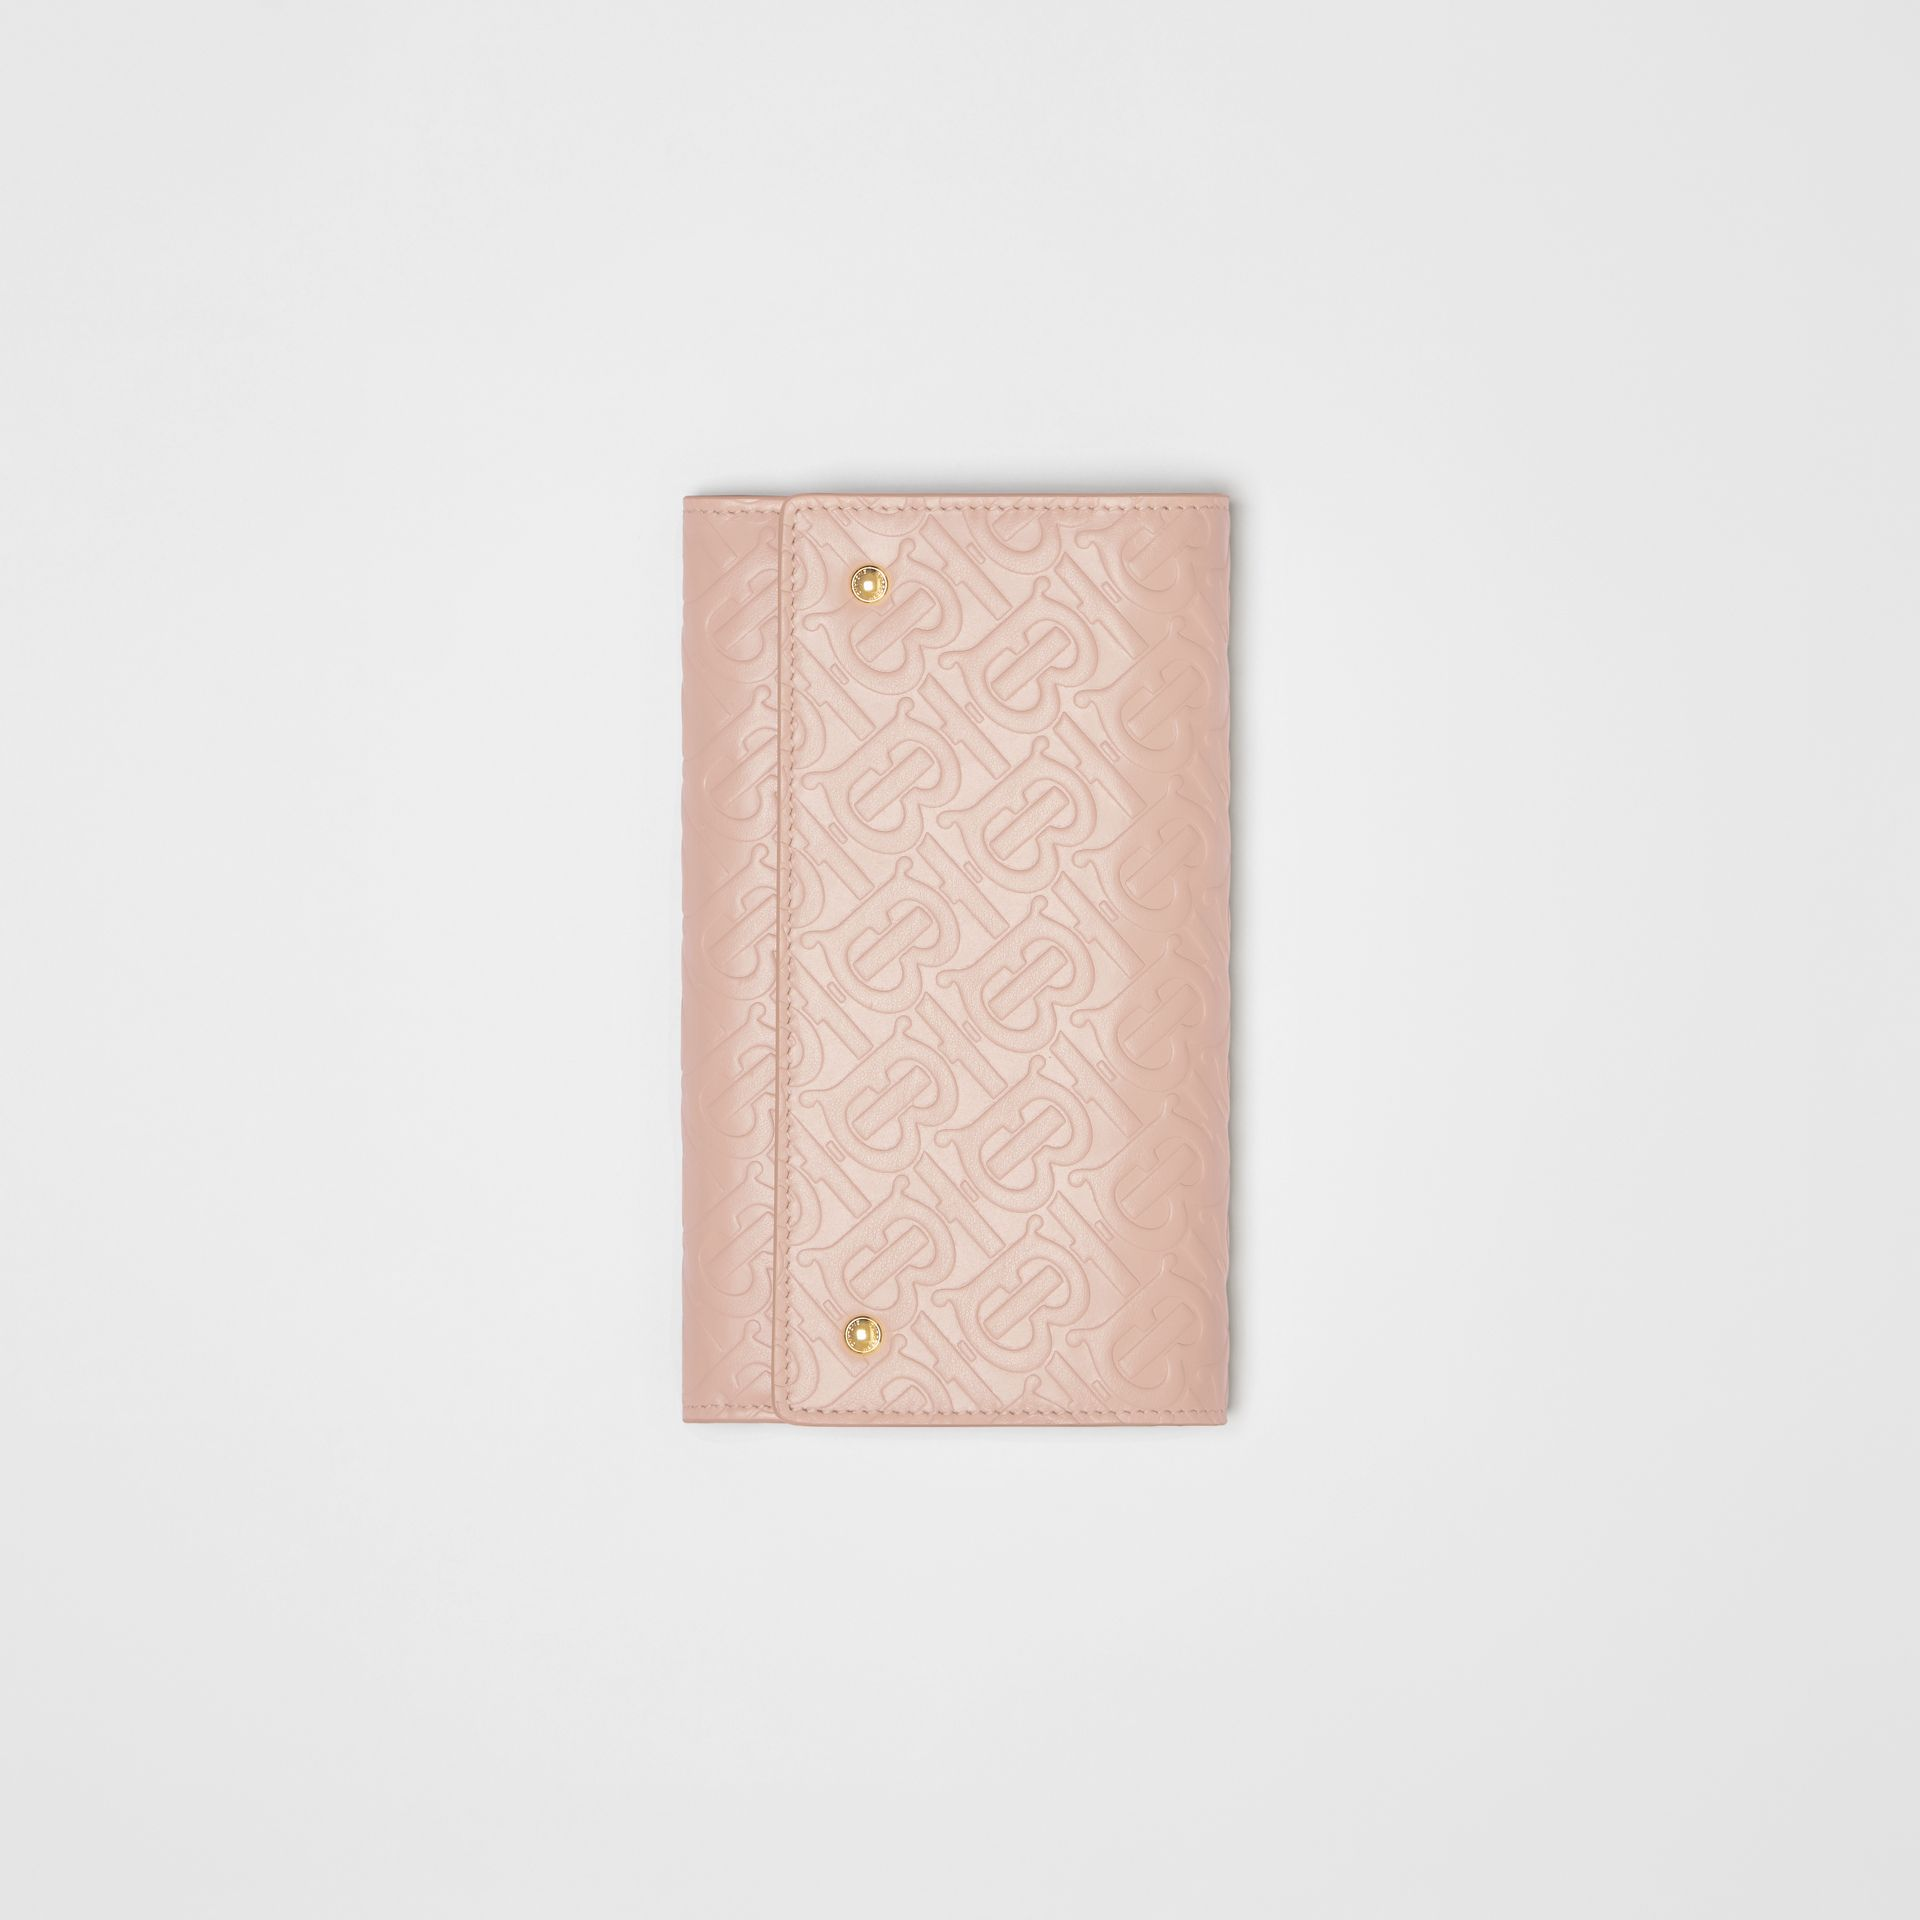 Portefeuille en cuir Monogram et sangle amovible (Beige Rose) - Femme | Burberry - photo de la galerie 4